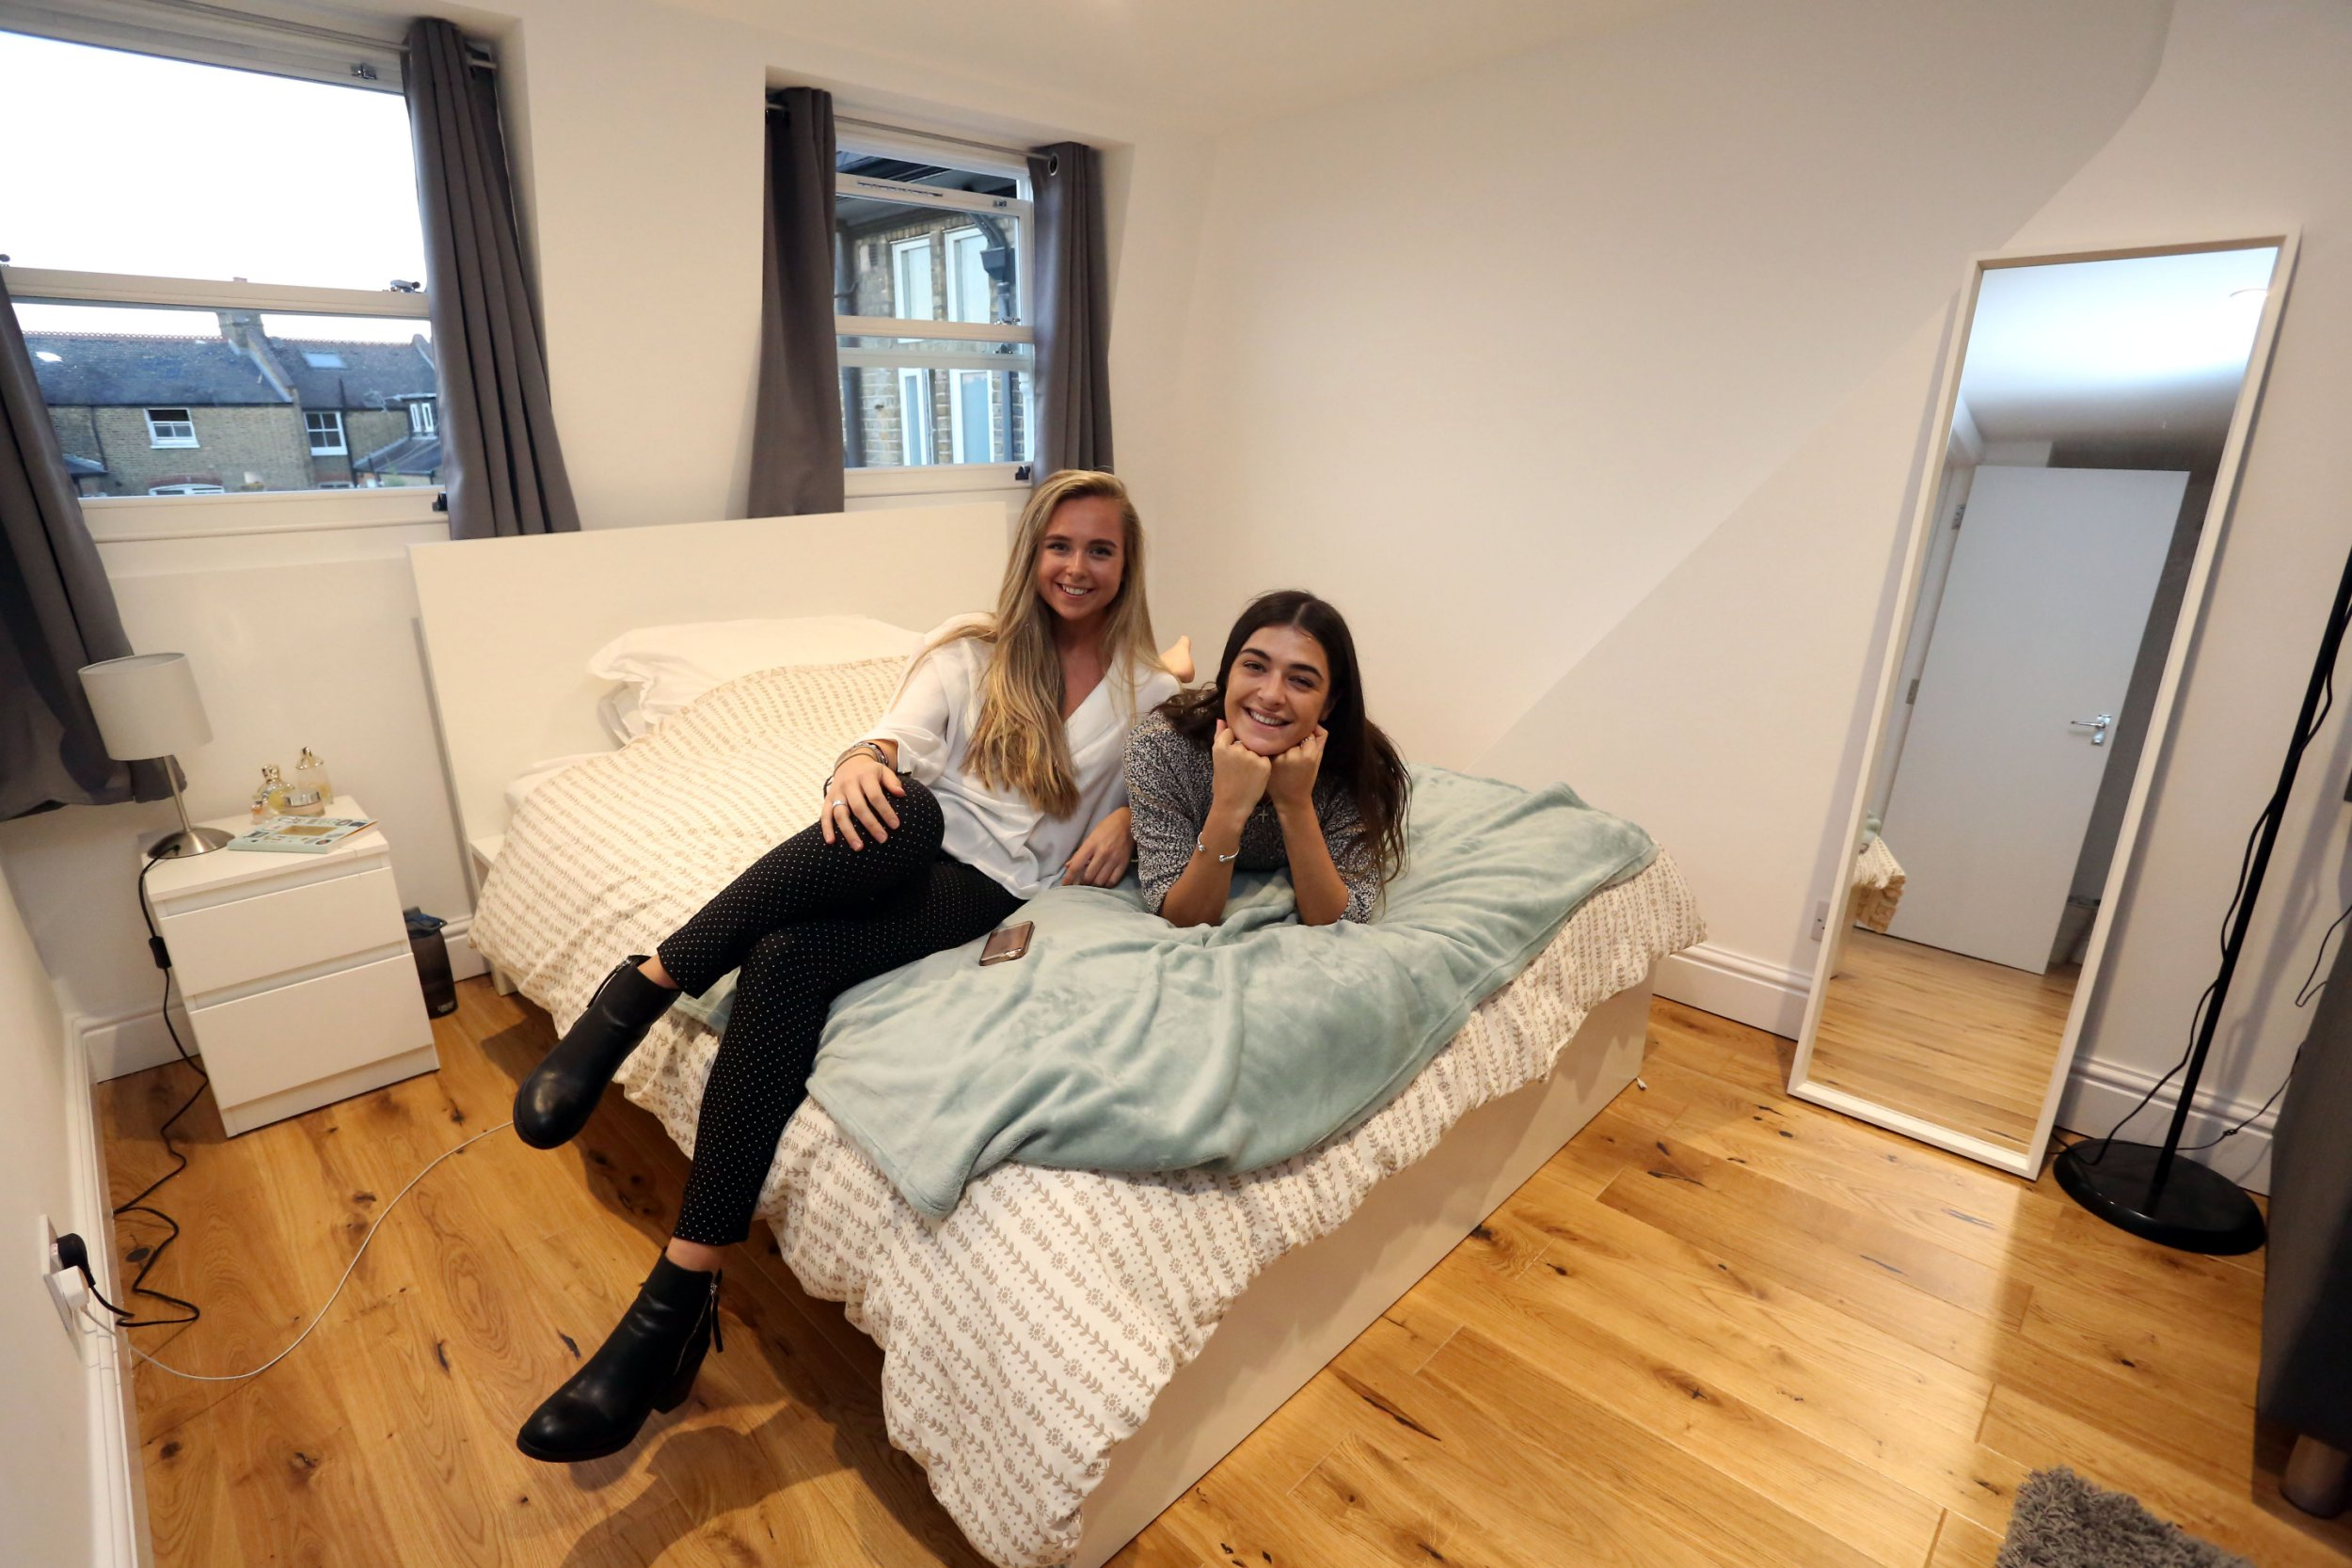 WHAT I RENT: CLAPHAM LONDON, OCTOBER 9TH 2018. Renters Jennifer White, 26, (right) and Celine Brown, 24, (left) are pictured in Jennifer's bedroom at their rented flat in Clapham, London, 8th October 2018. The three bedroom flat in Clapham is rented individually by the bedroom, Celine pays ?813, Jennifer pays ?835 and their third housemate pays ?760 a month. Photo credit: Susannah Ireland